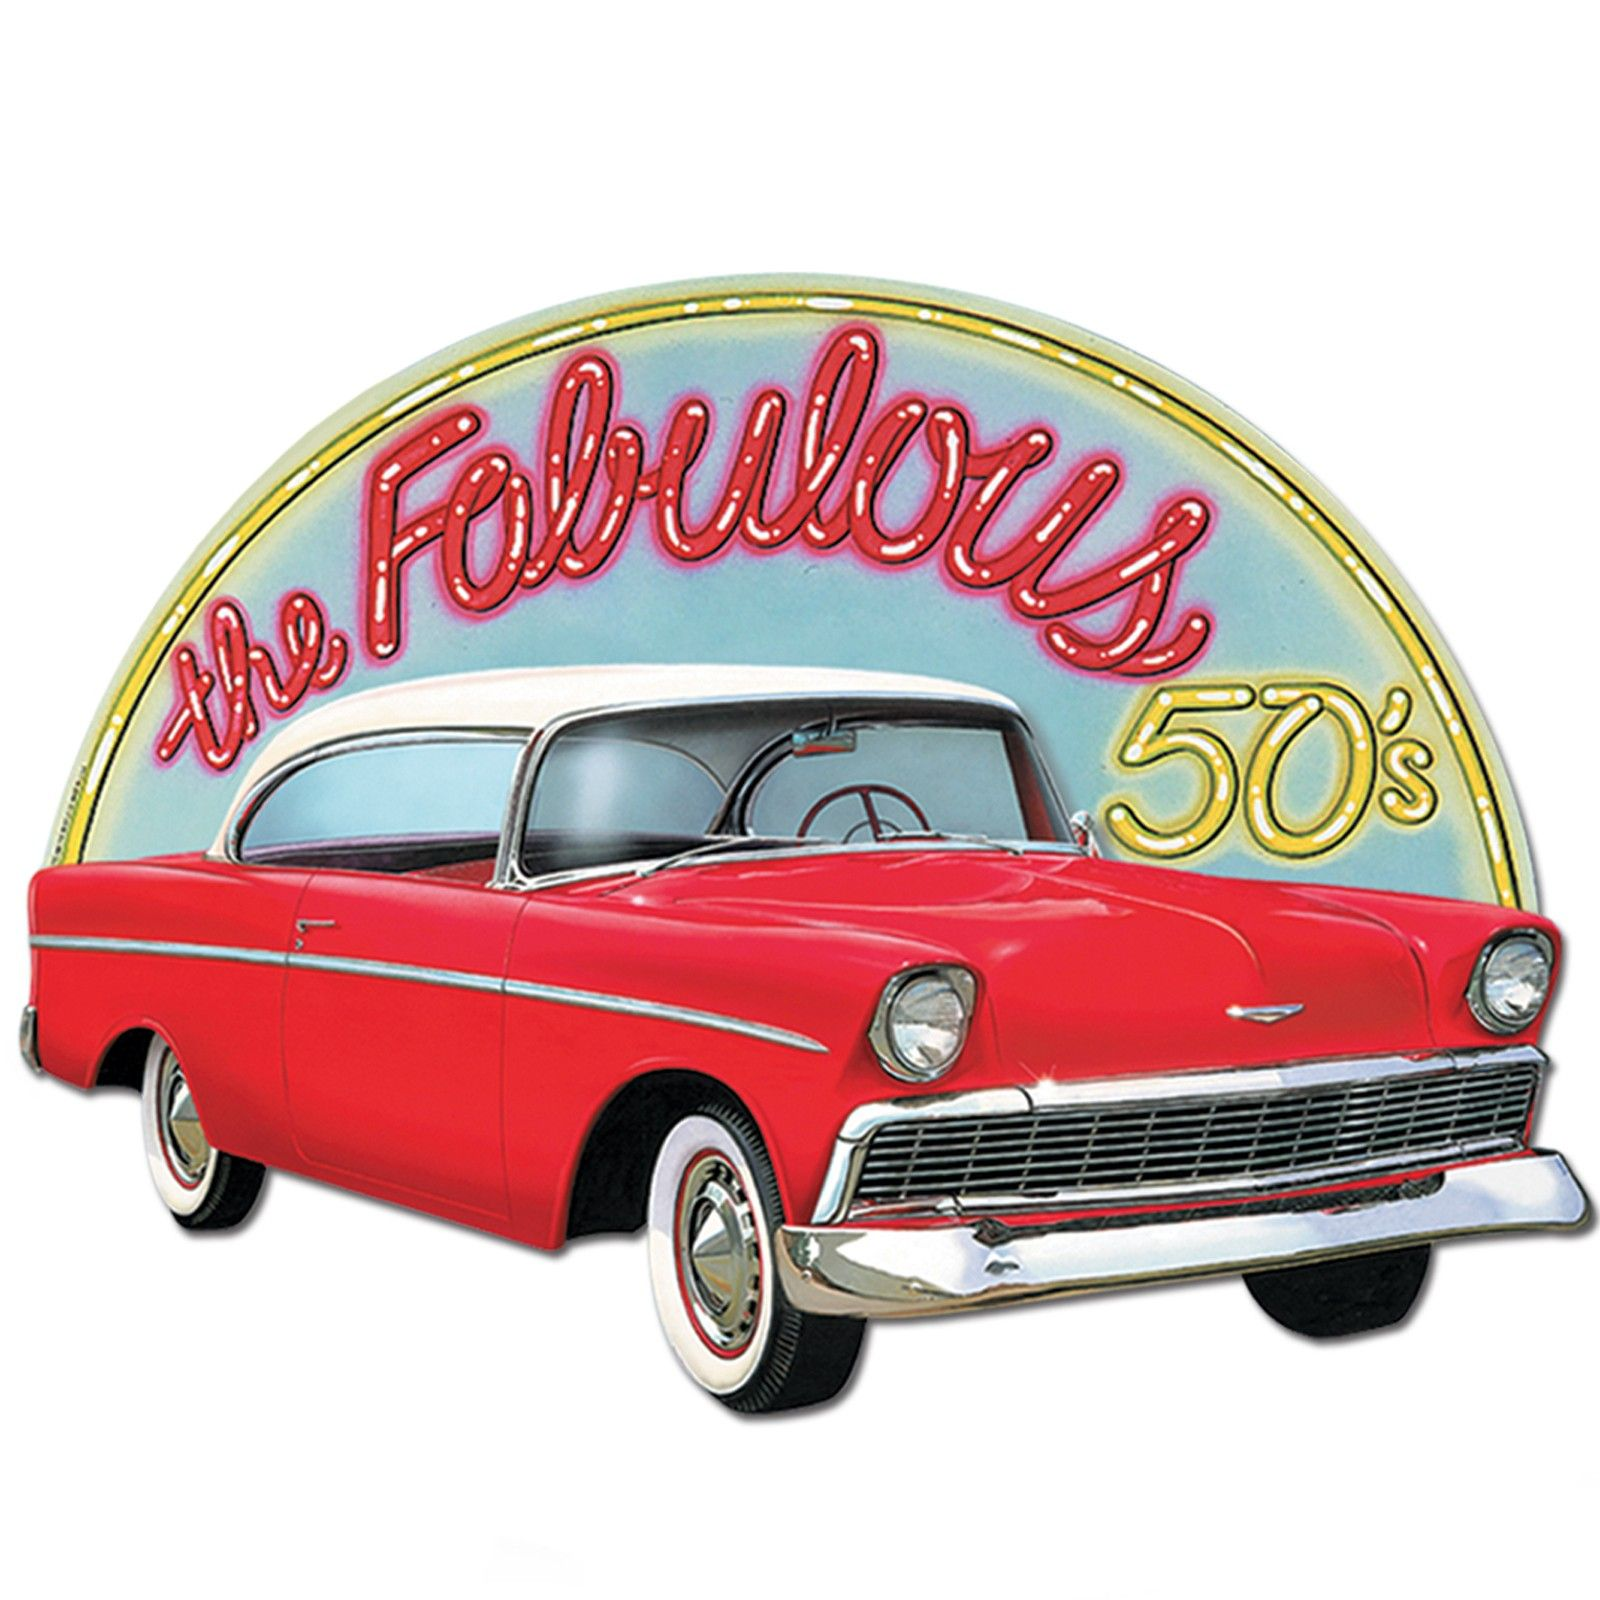 50s clipart car, 50s car Transparent FREE for download on.